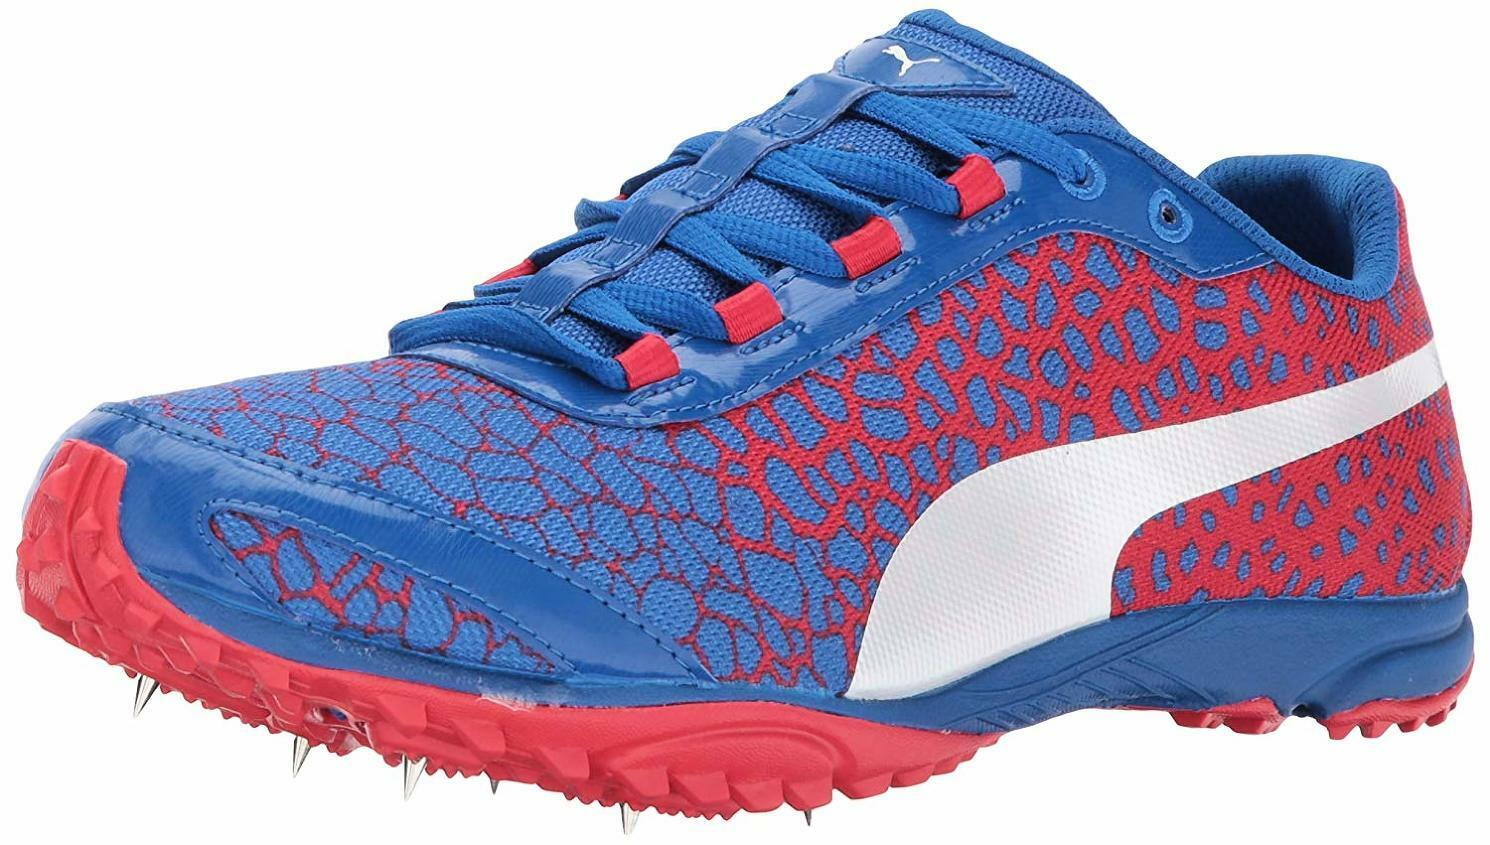 PUMA Men's Evospeed Haraka 4 Track-shoes, Lapis bluee-Toreador, 9.5 M US